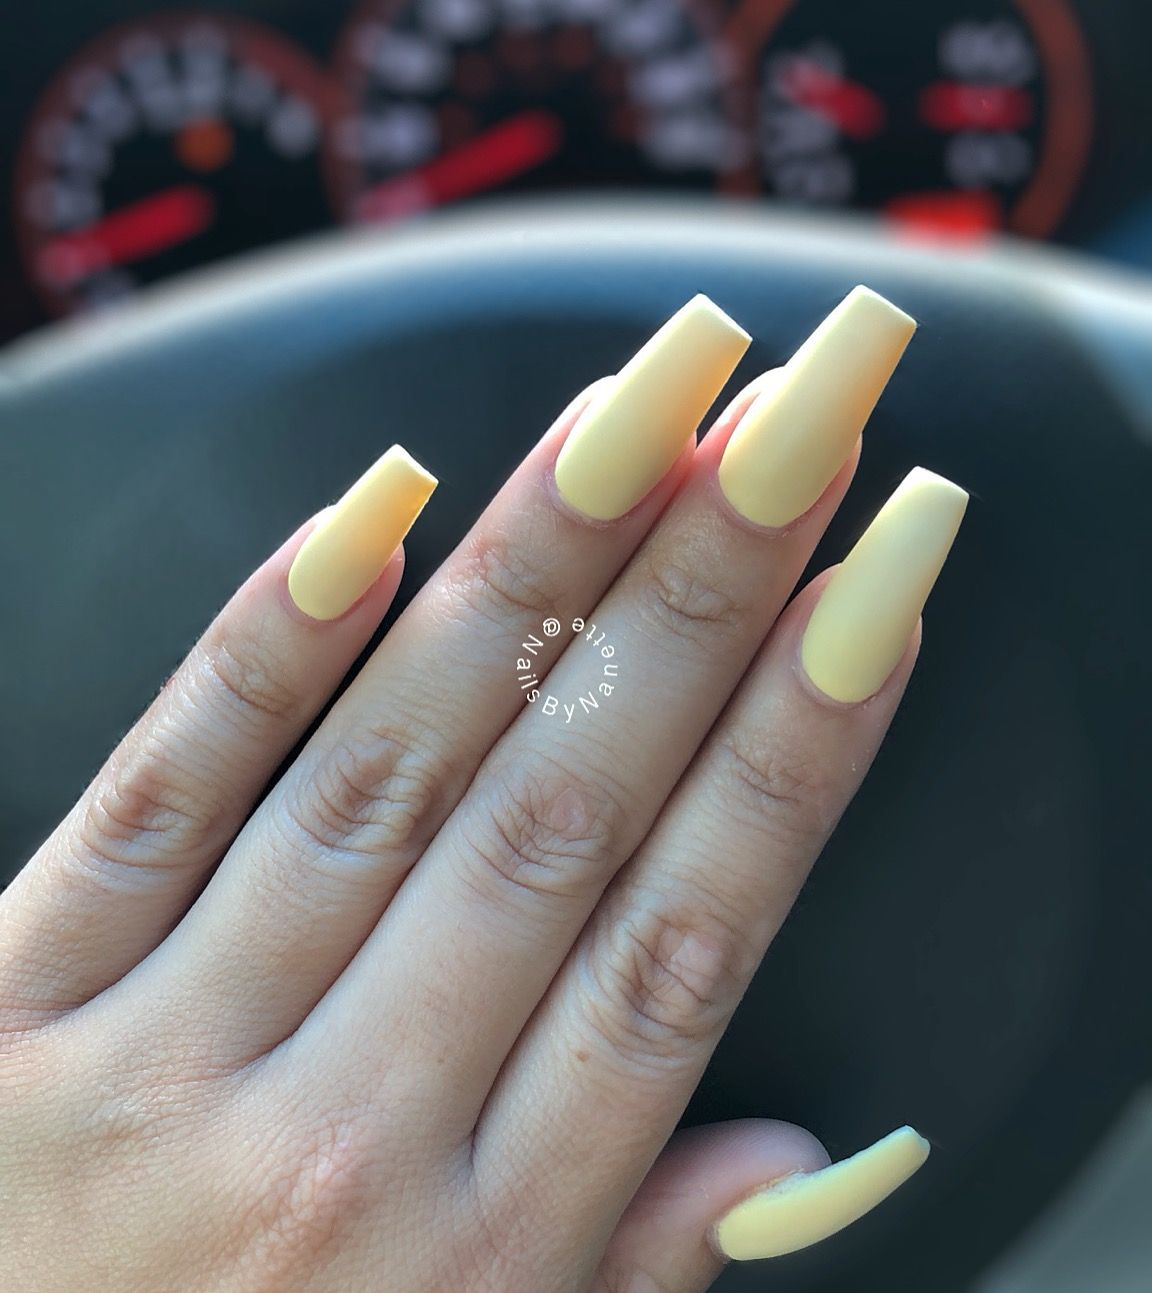 Pastel Yellow Matted Coffin Or Ballerina Nails In Medium Length Acrylic Nails Yellow Acrylic Nails Pastel Square Acrylic Nails